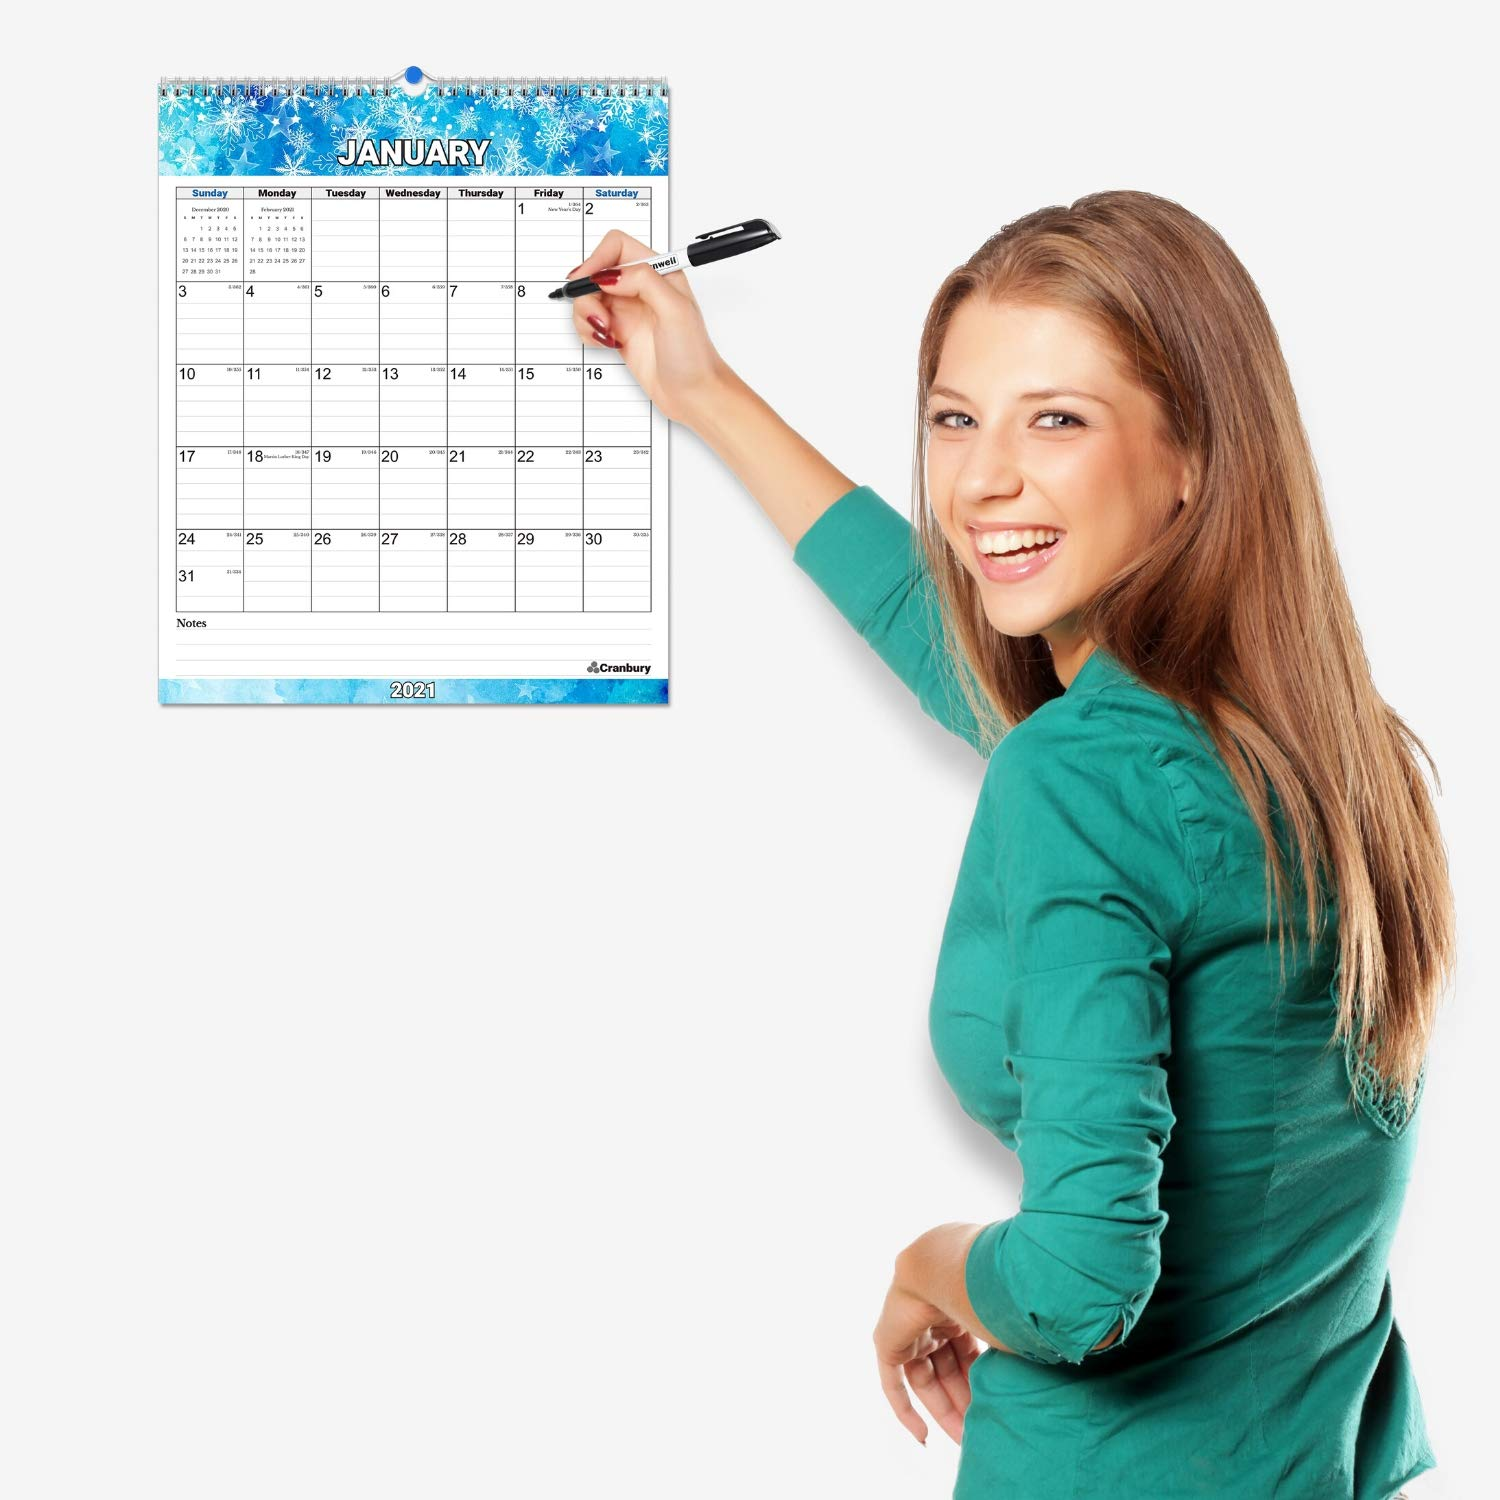 Wall Calendar Academic Year 2020-2021 (Seasons) 12x15, Use July 2020 to  December 2021, Large 18 Month School Year Calendar with Stickers for  Calendars, Hanging Office Back to School Calendars : Amazon.in: Office  Products